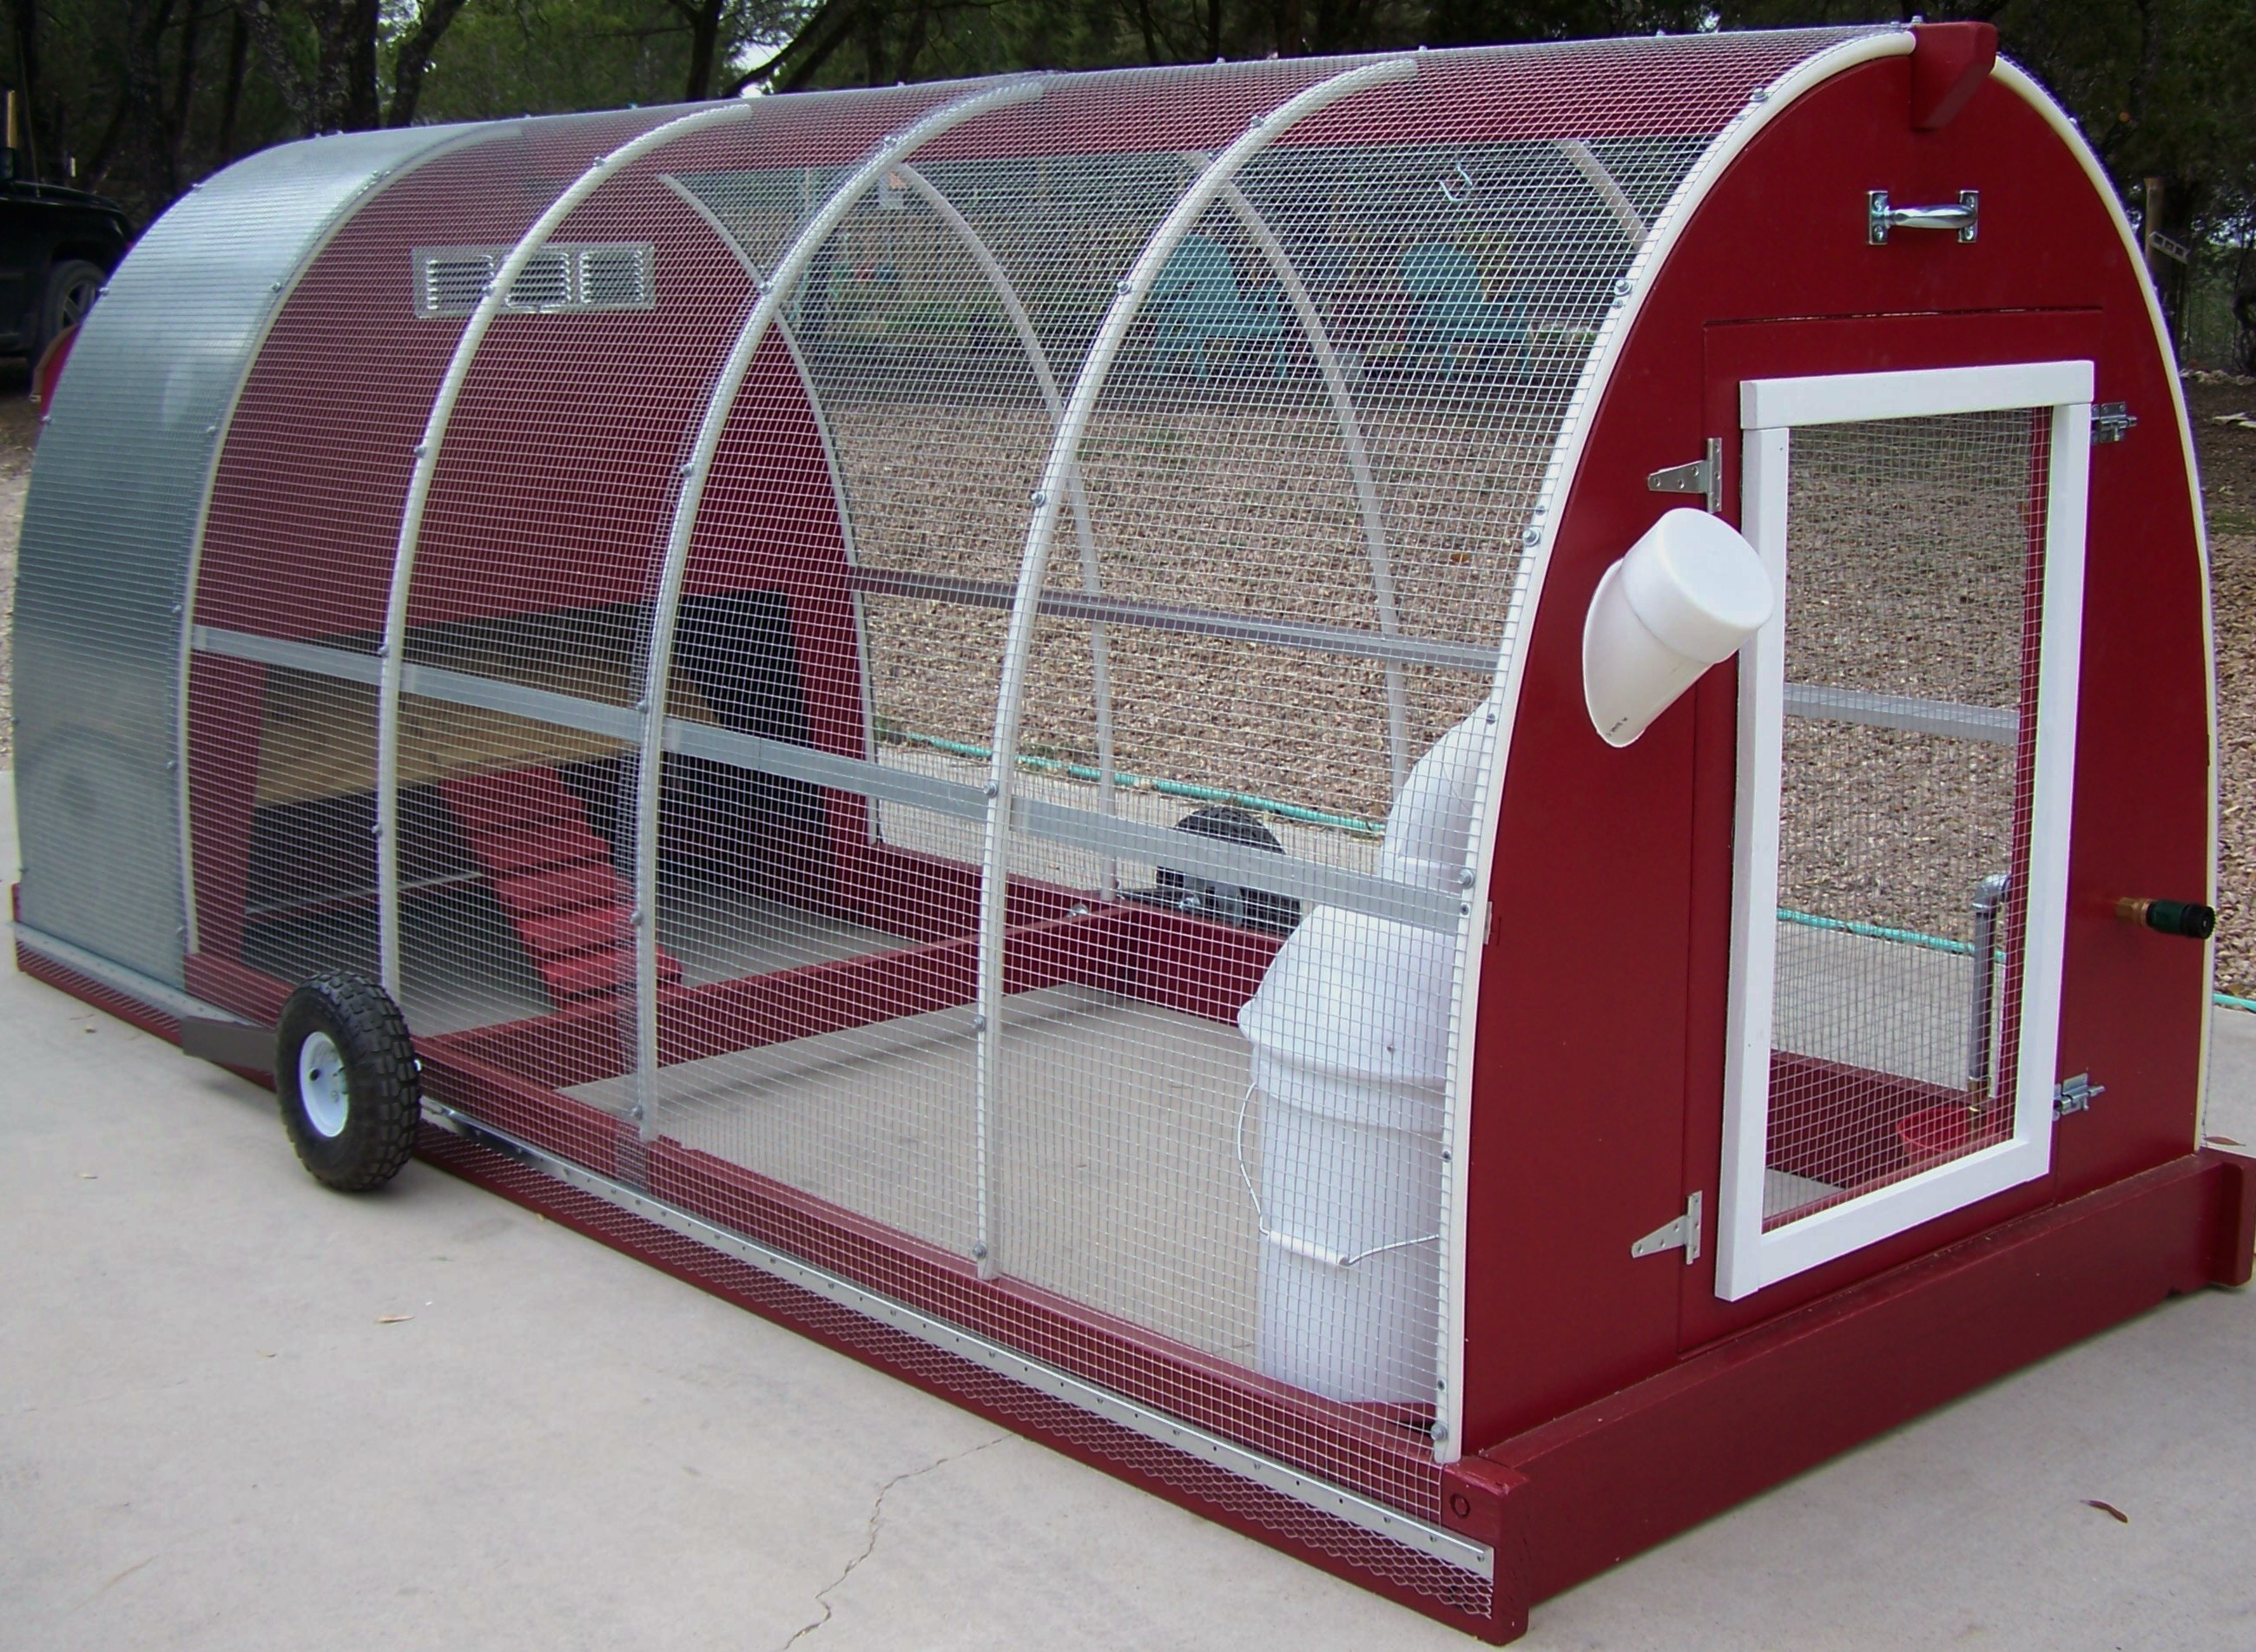 Chcken Coop Mobile Chicken Coop Plans